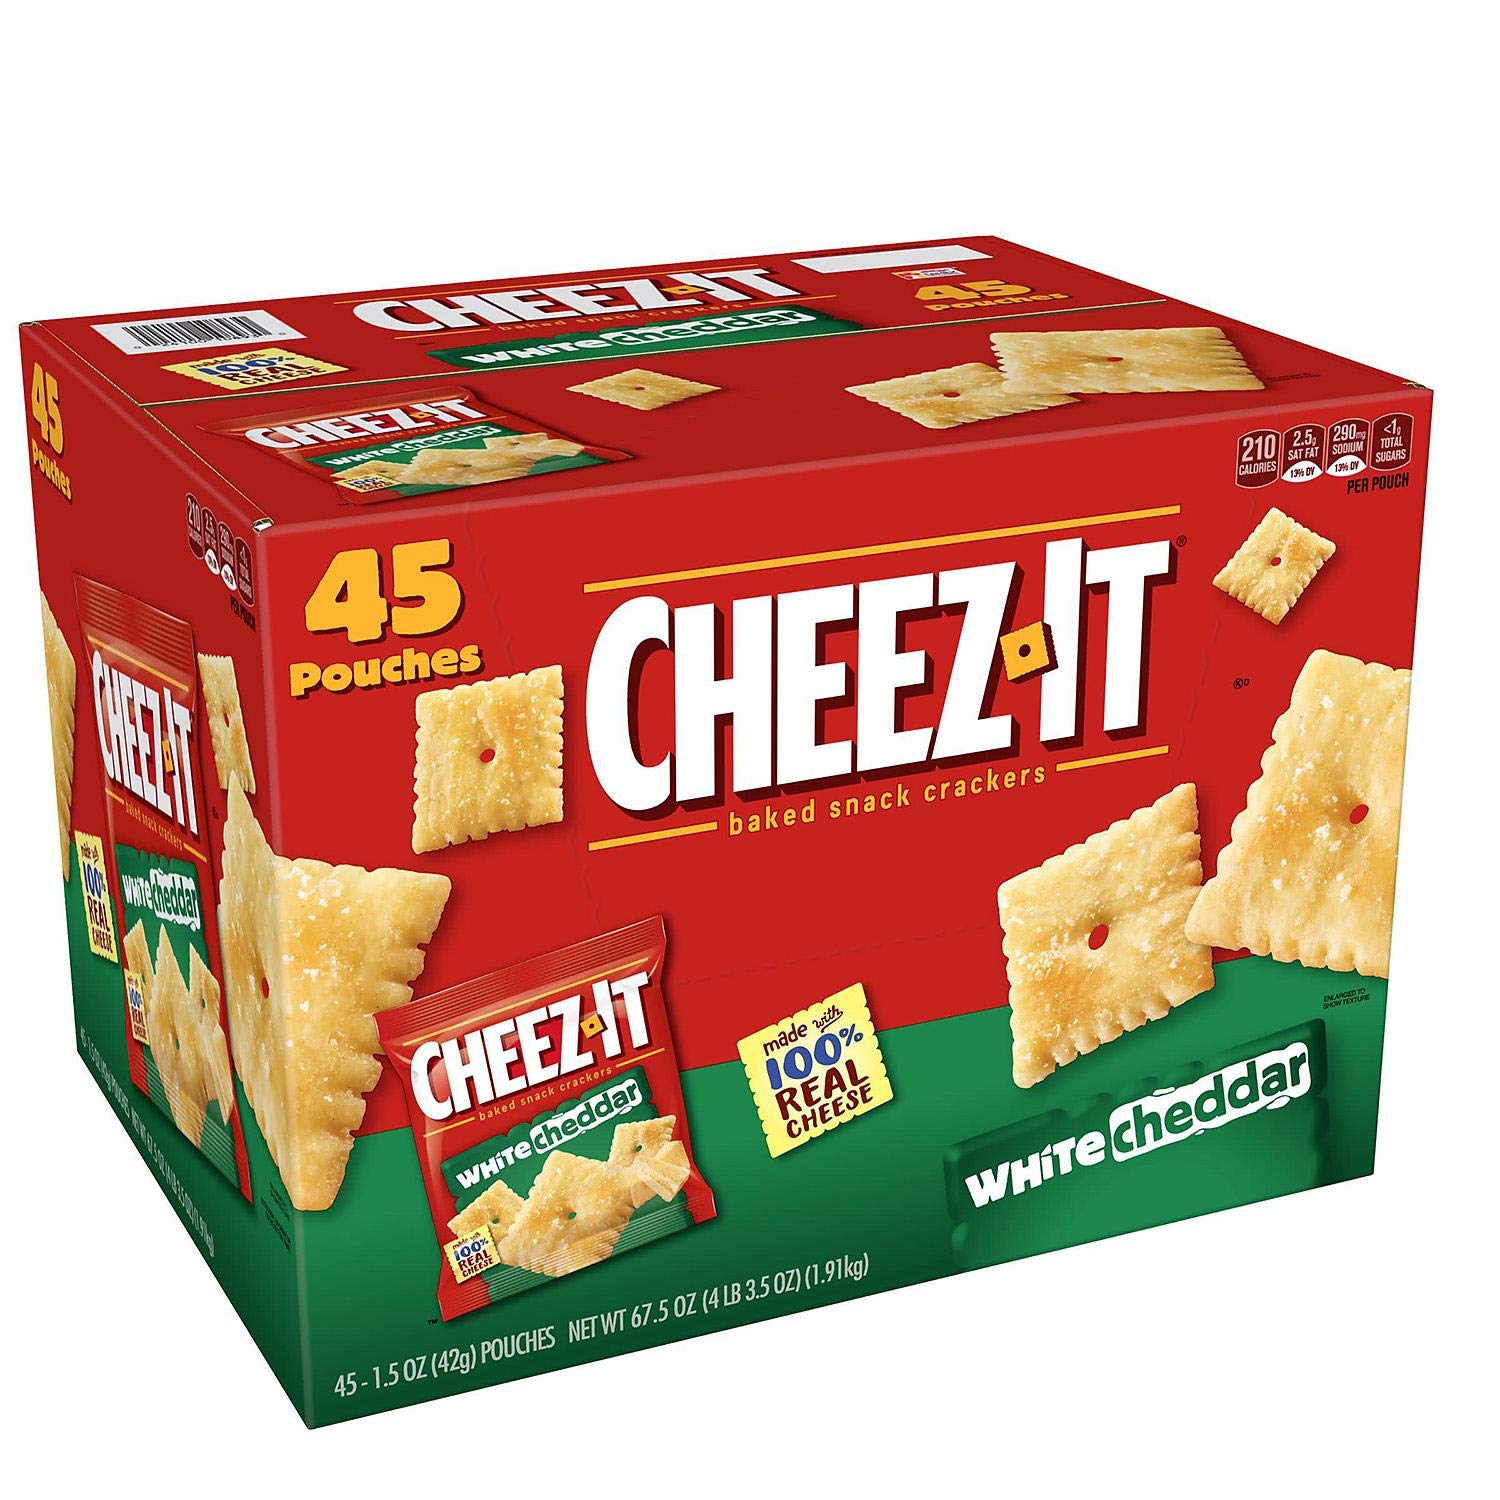 Cheez-It White Cheddar Crackers Snack Packs (1.5 oz. pouches, 45 ct.) - 2 pack by Cheez-It